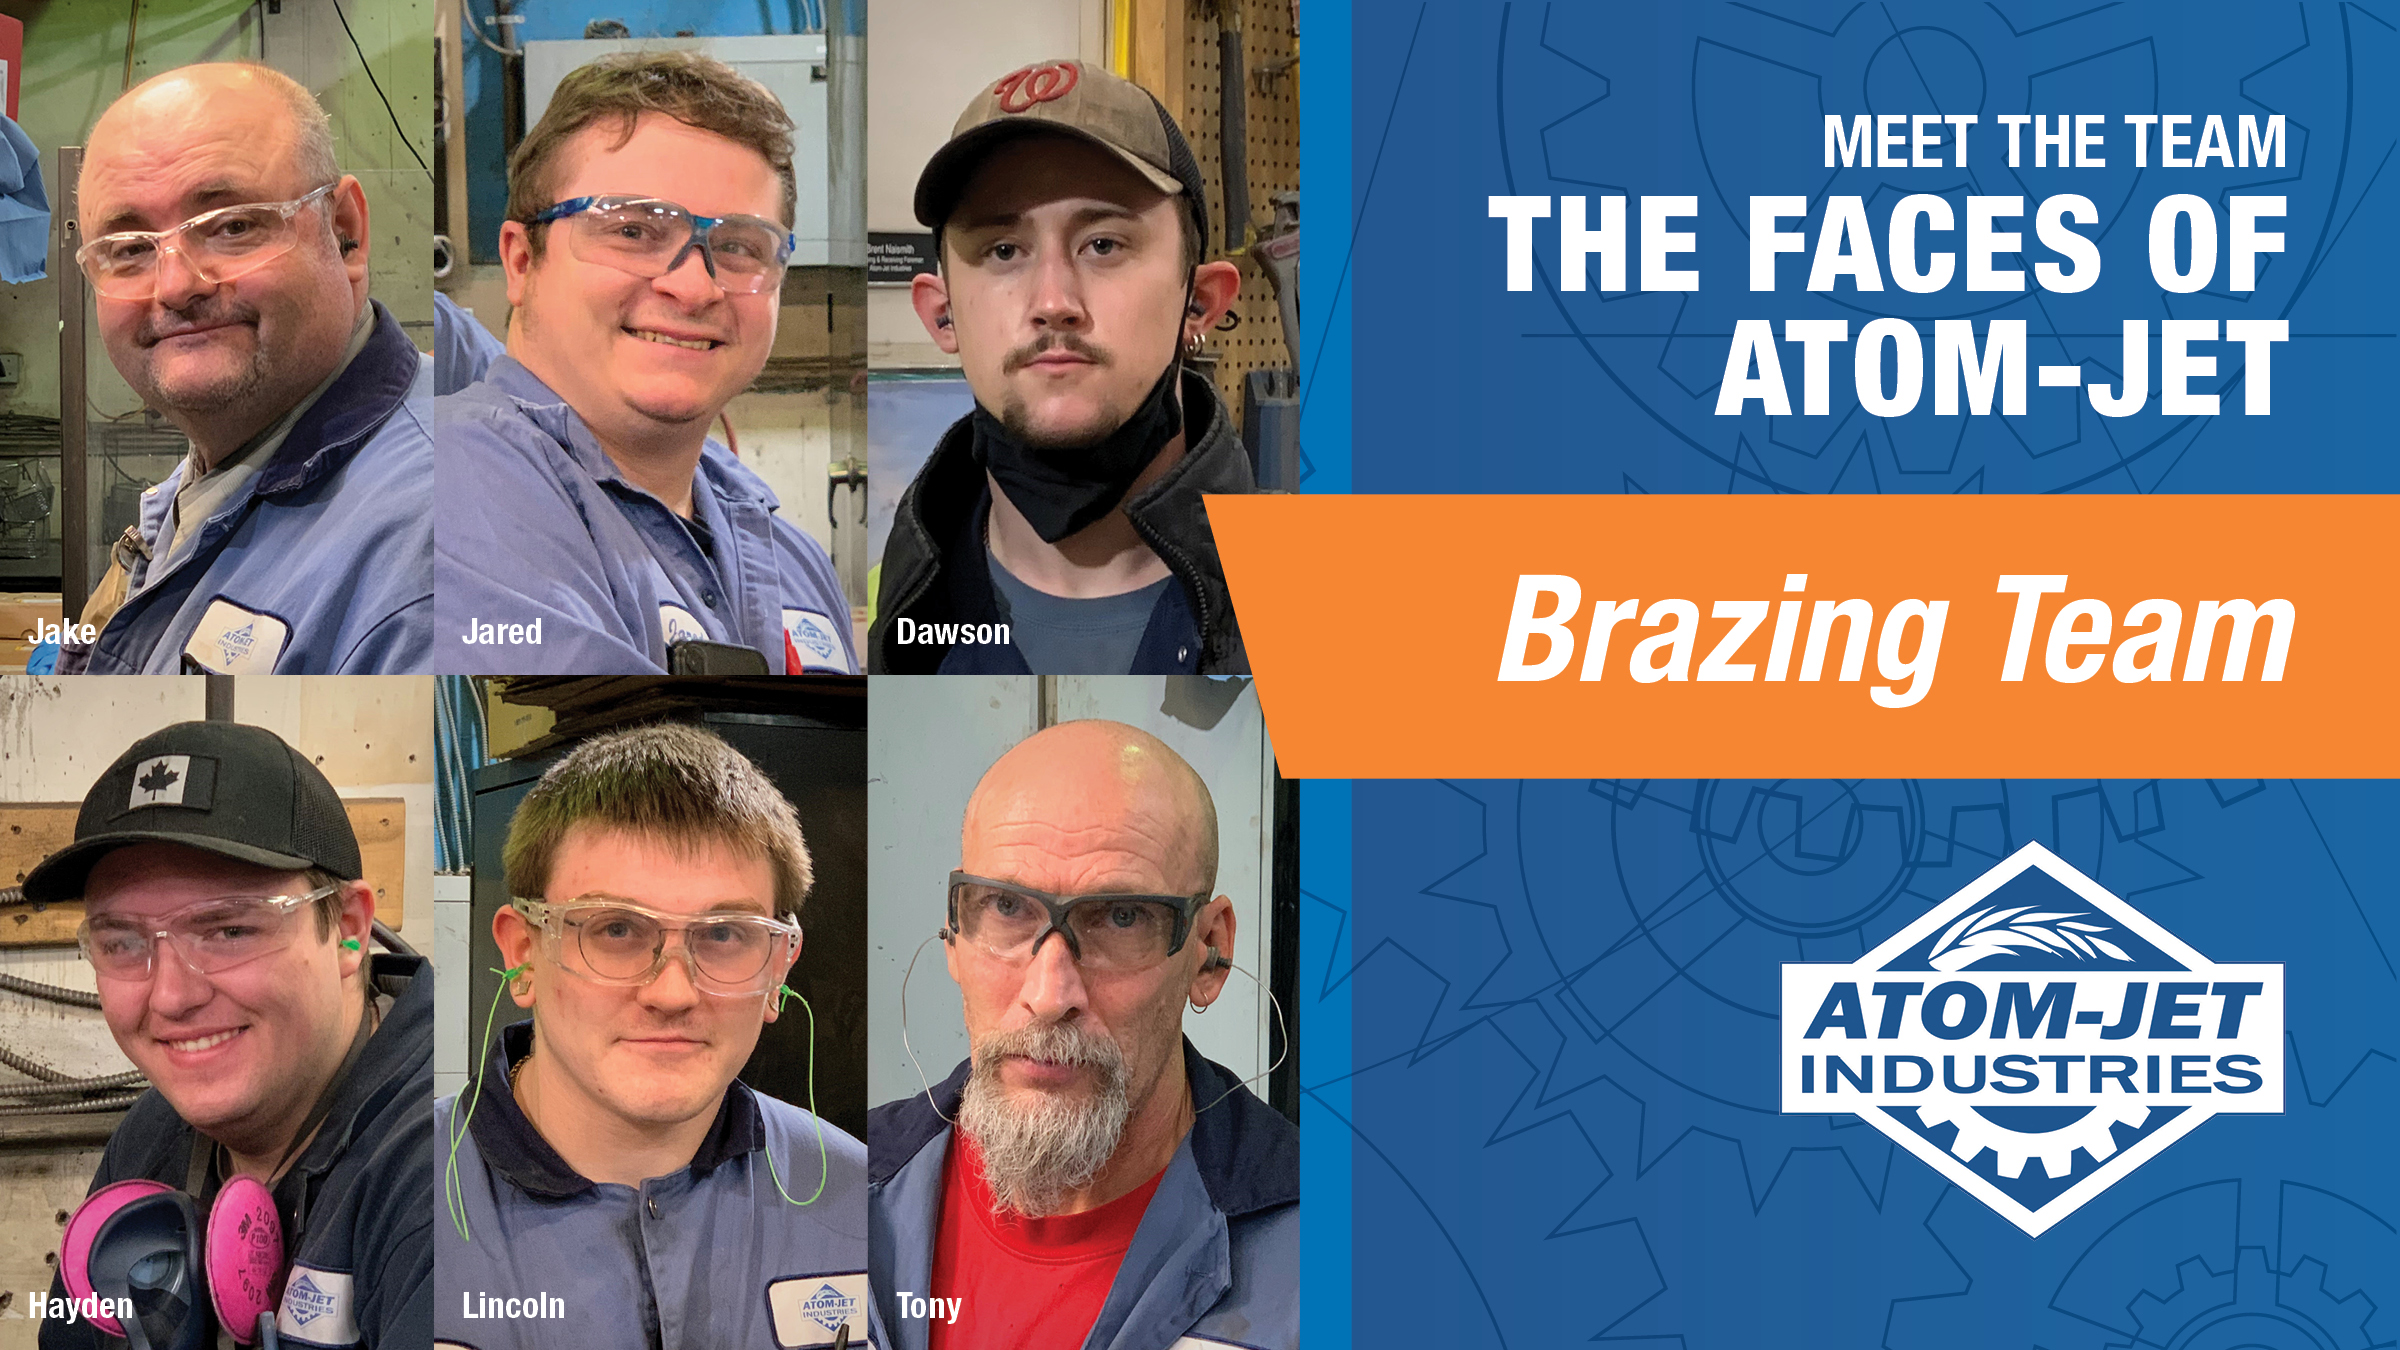 The Brazing Team at Atom-Jet Industries